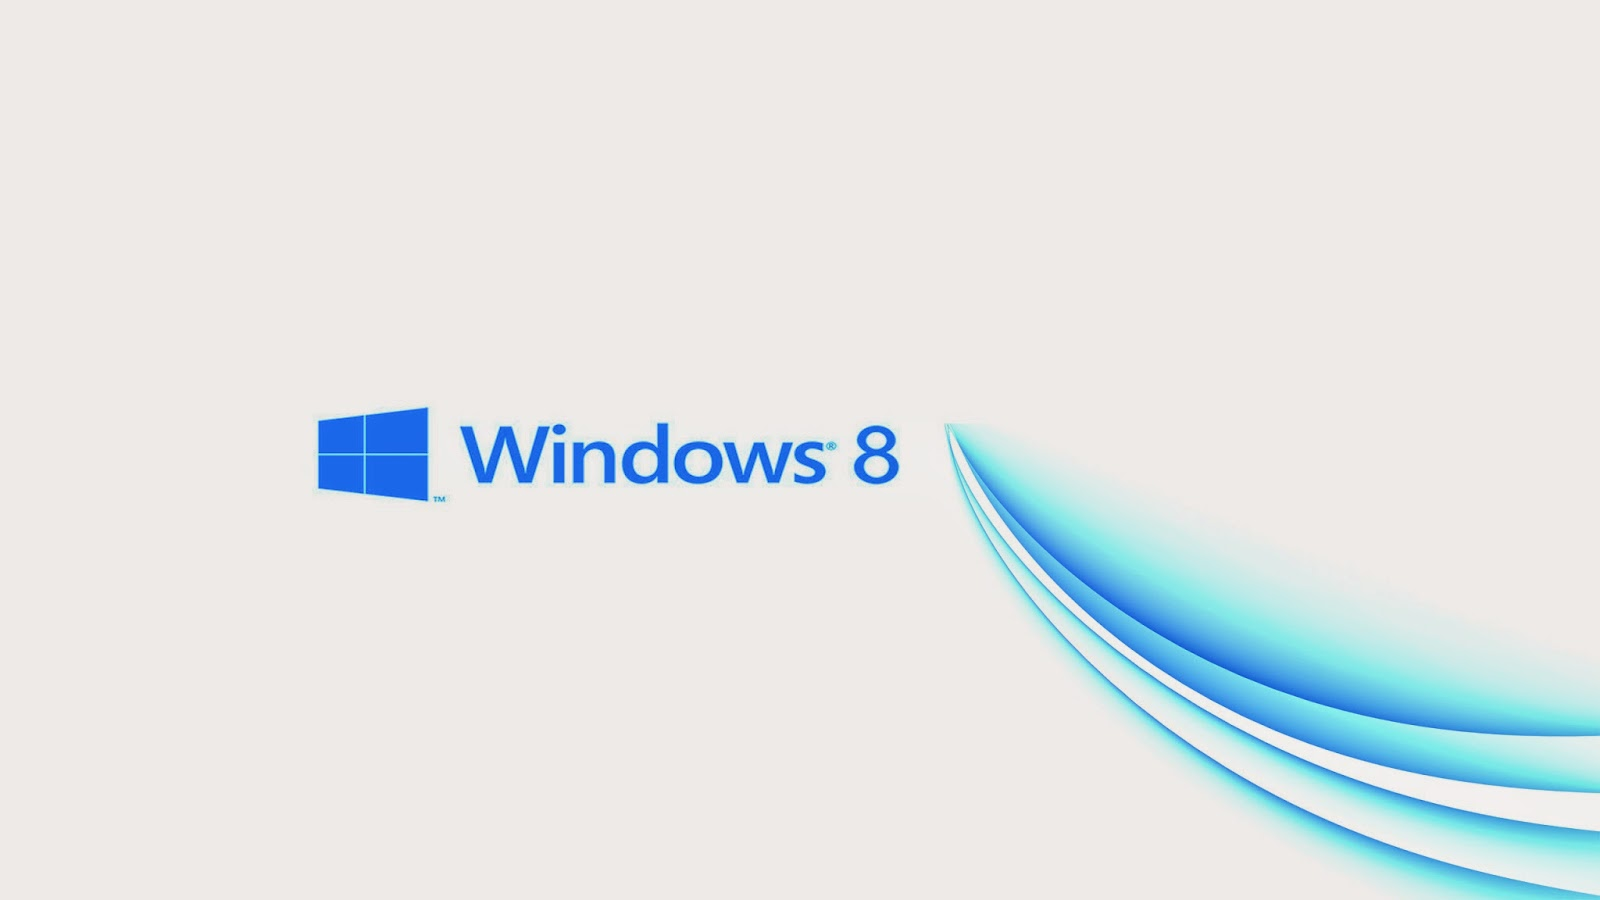 Windows-8-blue-logo-white-background-with-stripes-corporate-look-full-HD.jpg